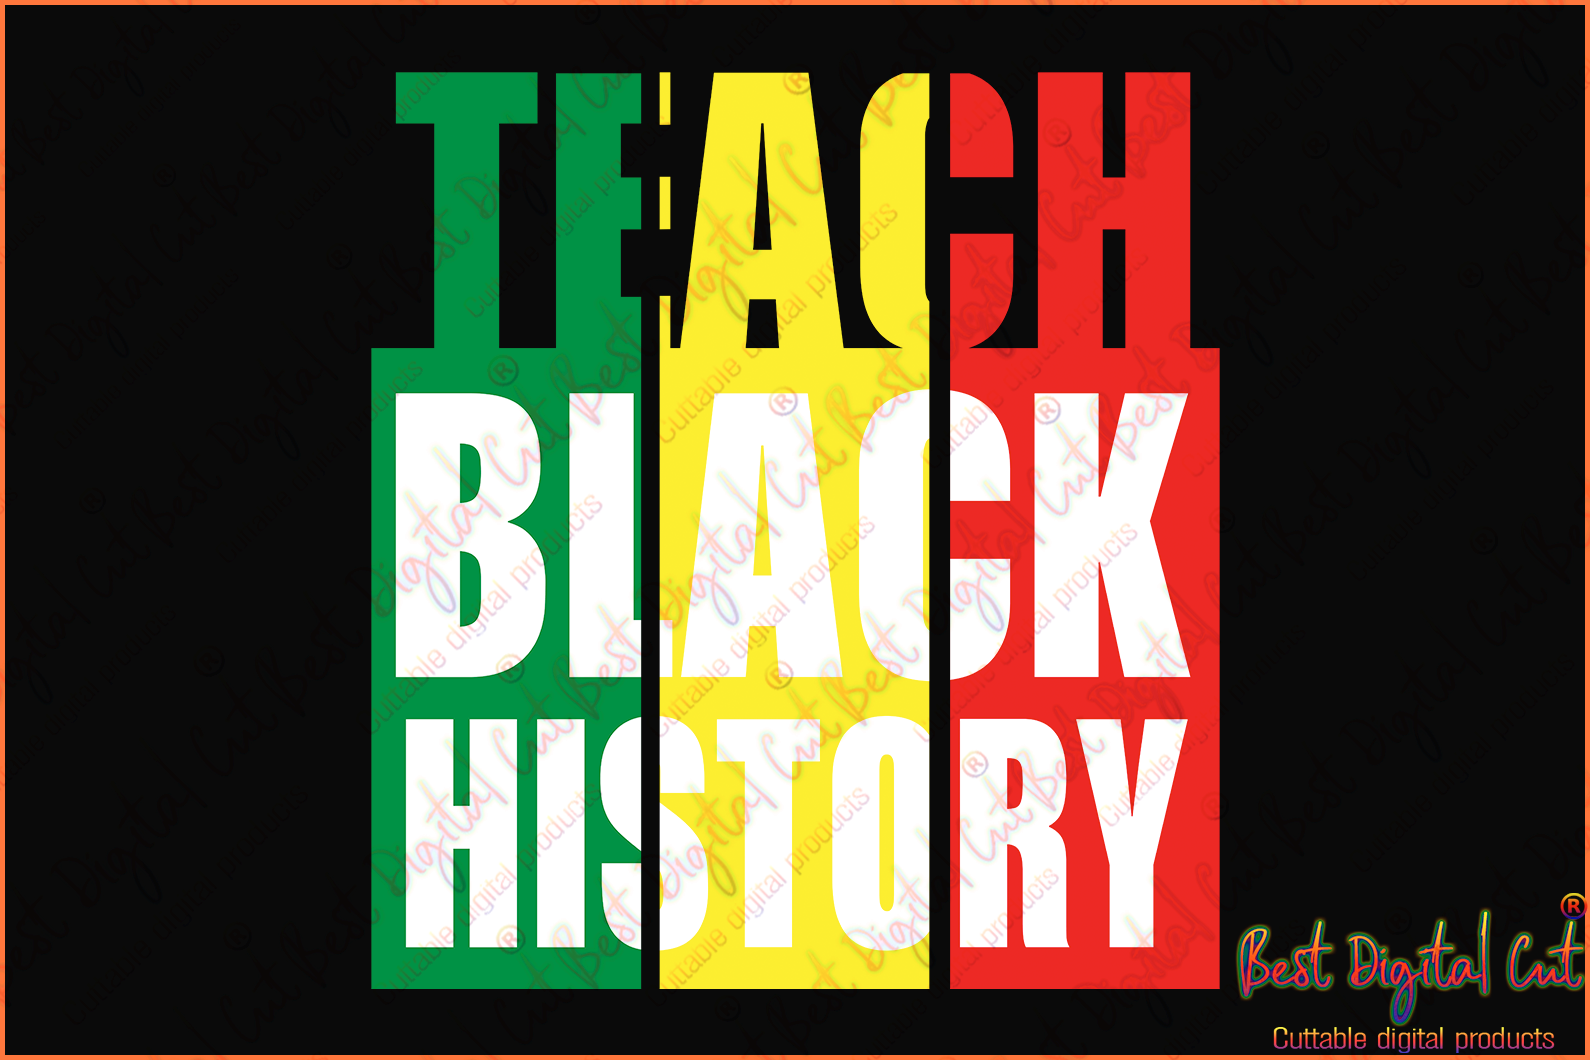 Teach black history svg,black history month,black history shirt,black lives matter,black girl magic,black history svg,,black pride shirt,silhouette svg, cricut svg files, decal and vinyl,